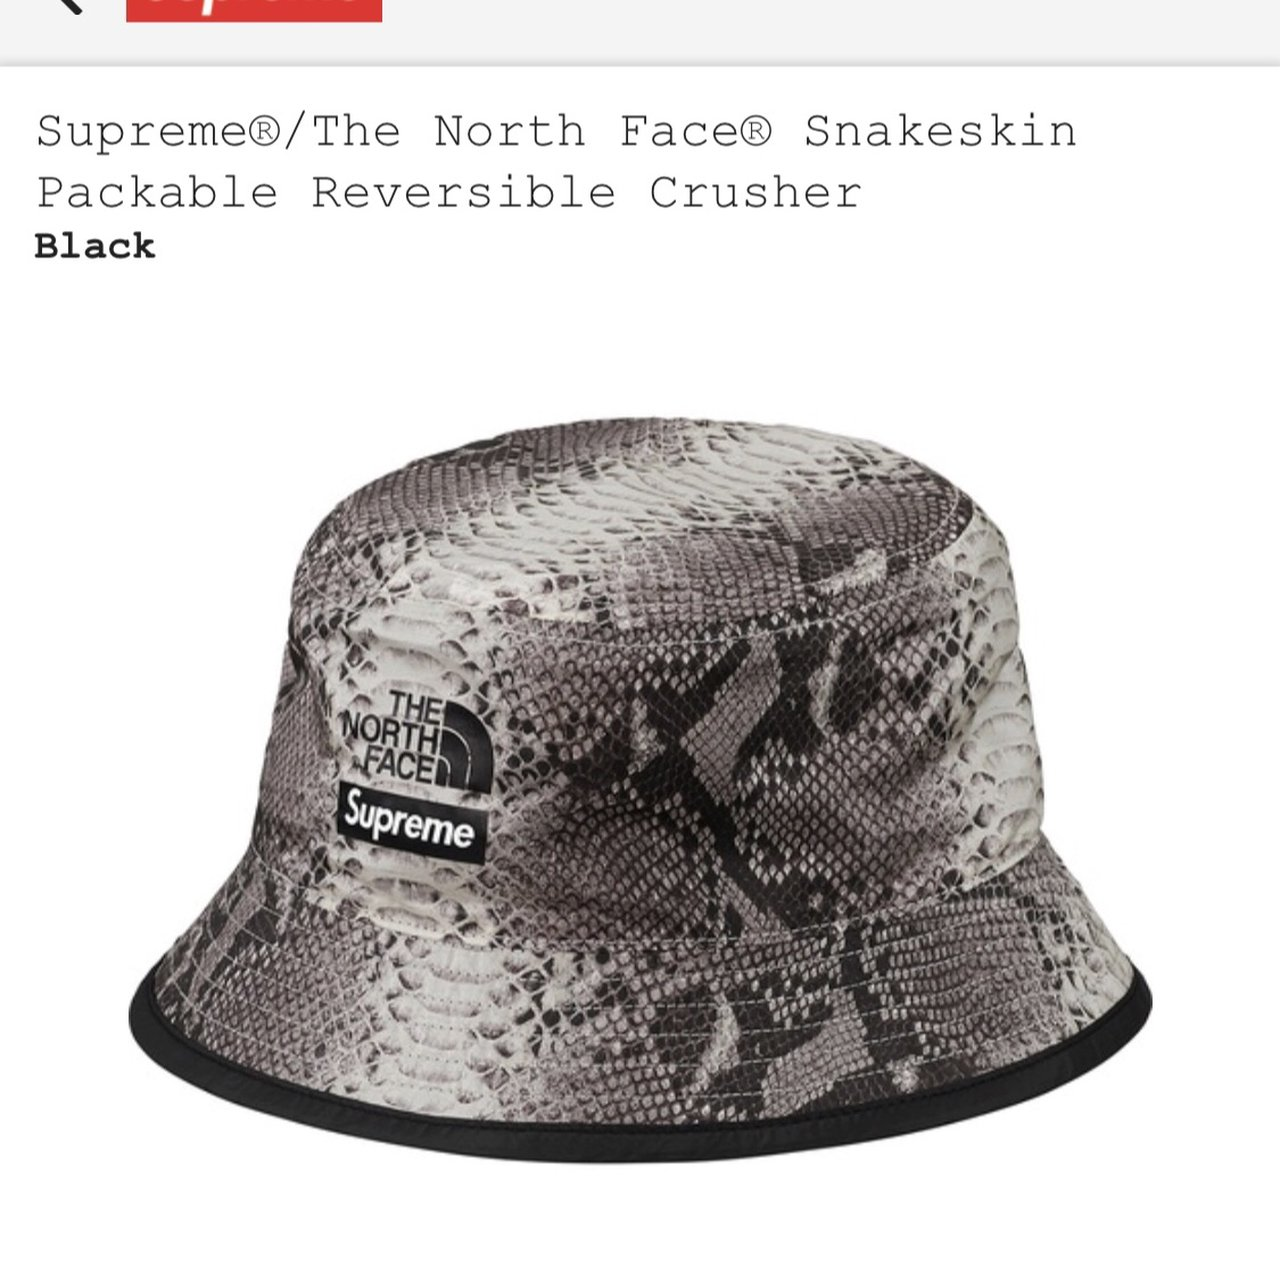 Supreme x the north face black snakeskin bucket hat. £70. no - Depop 7f4a1edc773